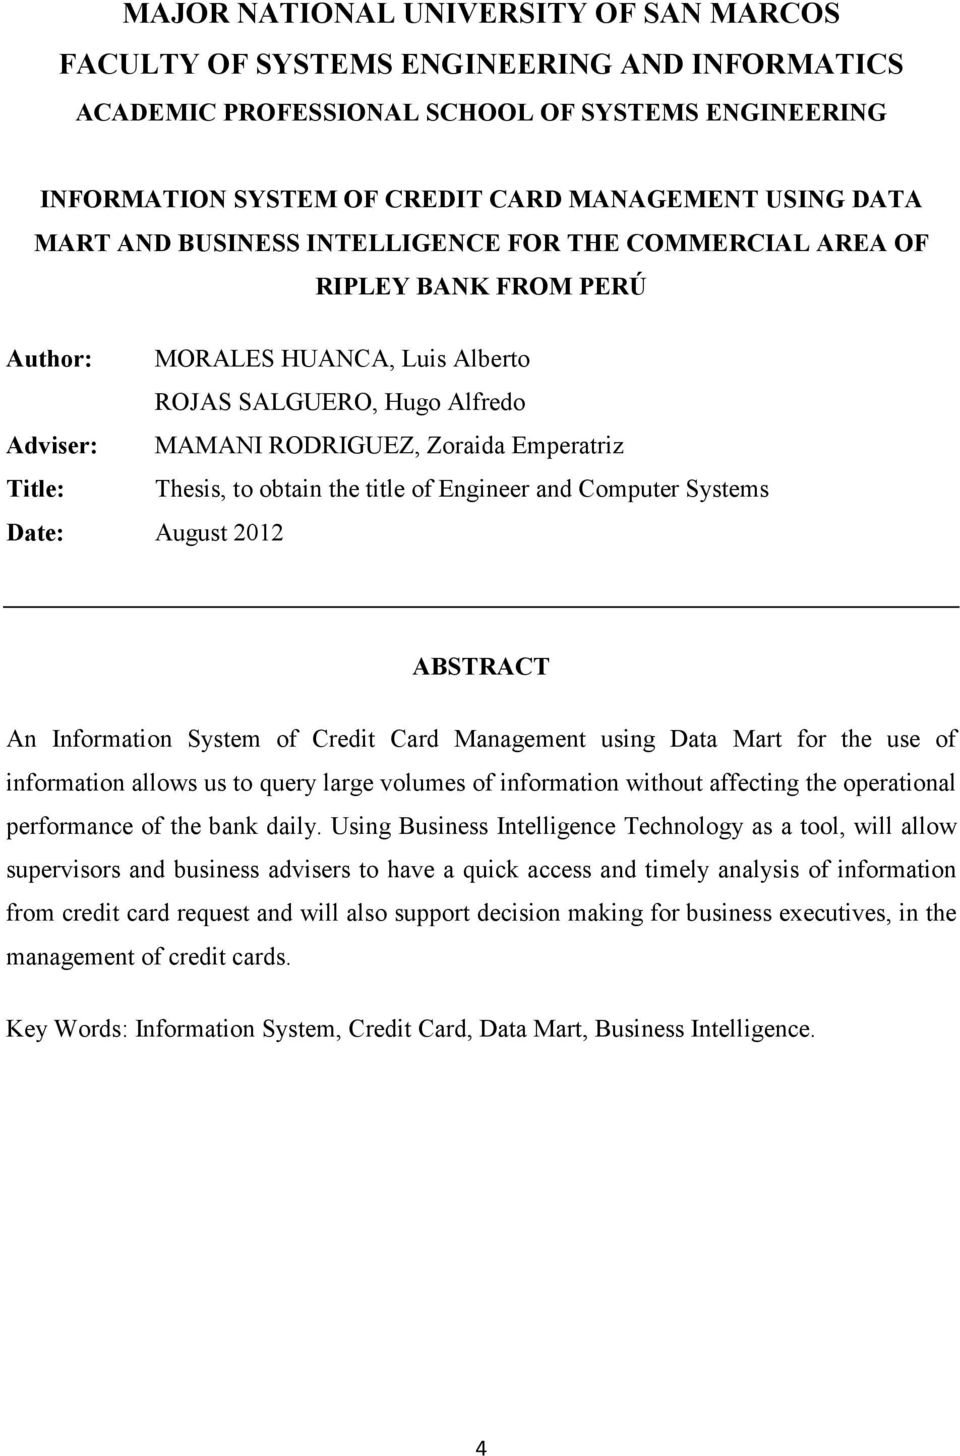 Thesis, to obtain the title of Engineer and Computer Systems Date: August 2012 ABSTRACT An Information System of Credit Card Management using Data Mart for the use of information allows us to query